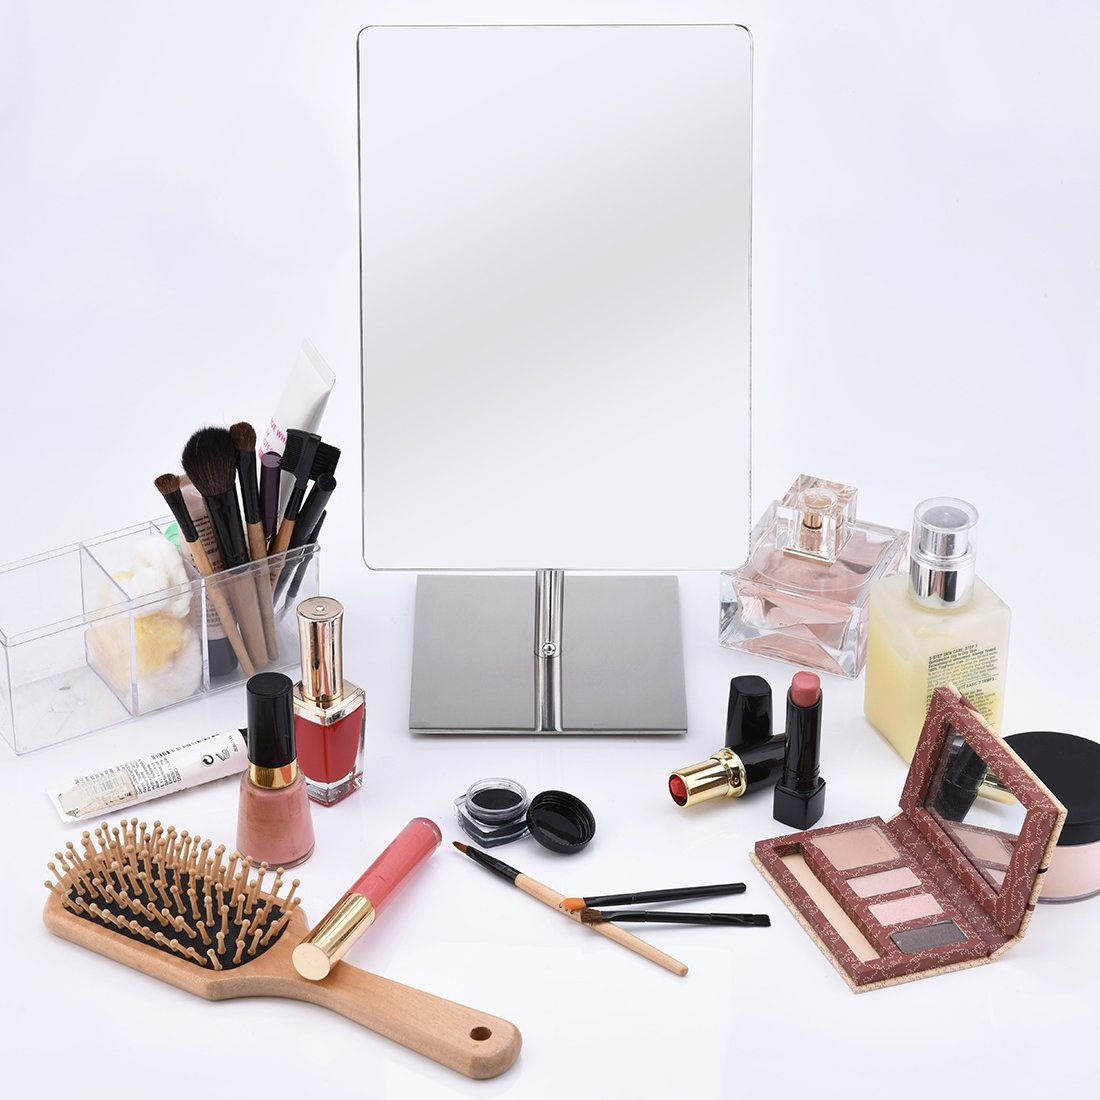 FIRMLOC Non-magnifying Vanity Mirror, Makeup Mirror Adjustable Rectangular Tabletop Mirror, Rectangular Glass Surface 9 inch x 6.5 inch, Portable Polished Chrome Contemporary Finished by FIRMLOC (Image #9)